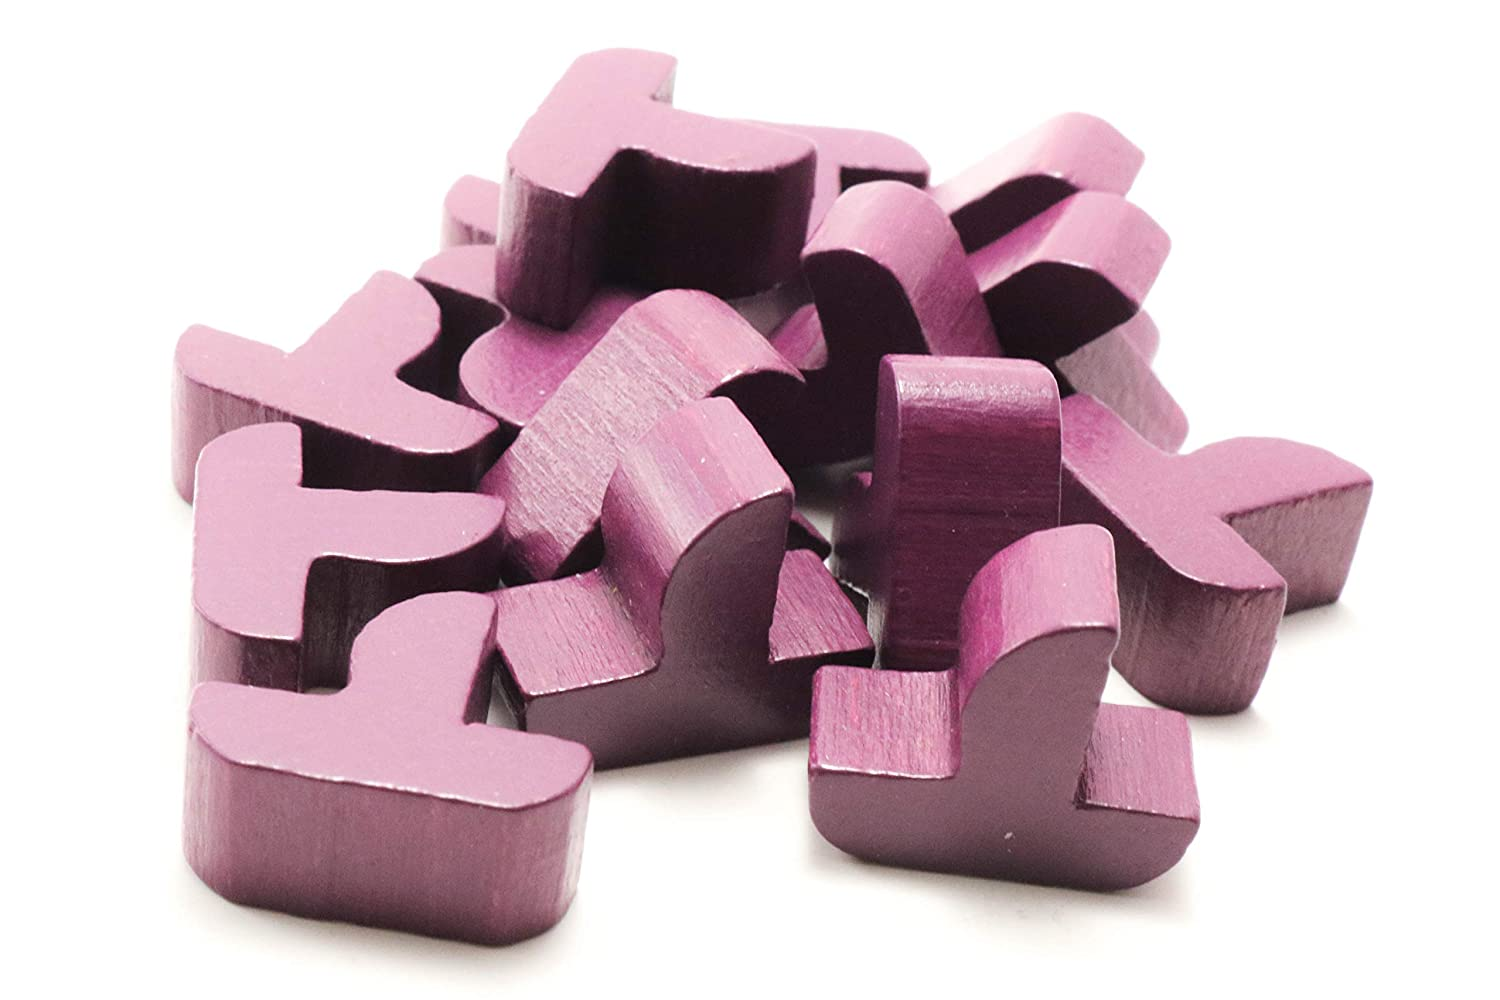 Seafarers Edition YorksGamePieces Purple Ships Expansion Wood Replacement Pieces for Settlers of Catan